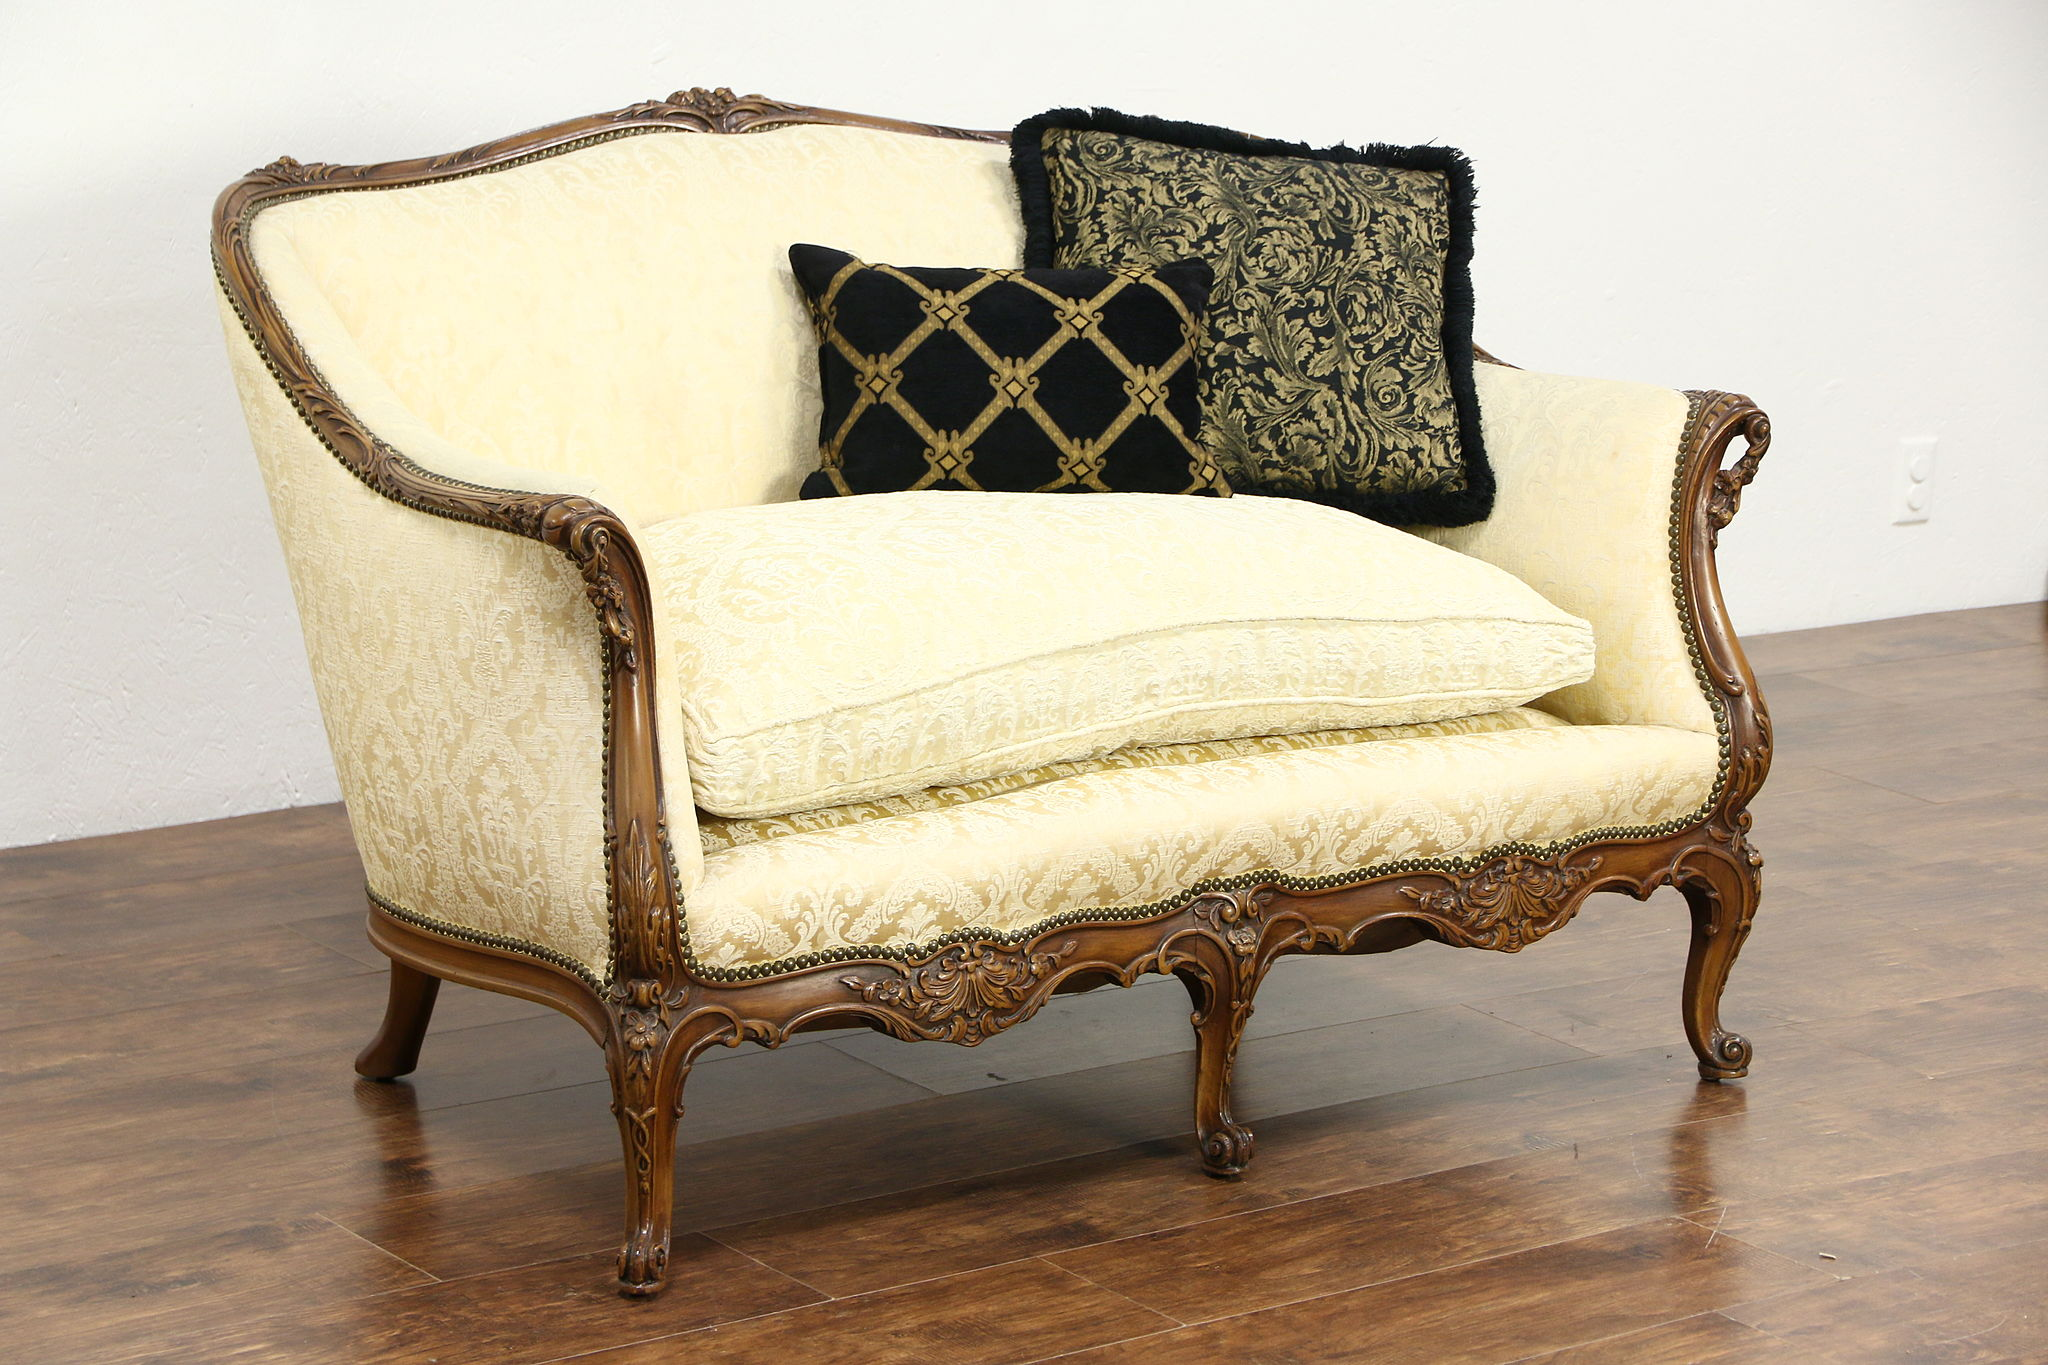 Sold french style carved vintage loveseat or setee down cushion recent upholstery harp Antique loveseat styles